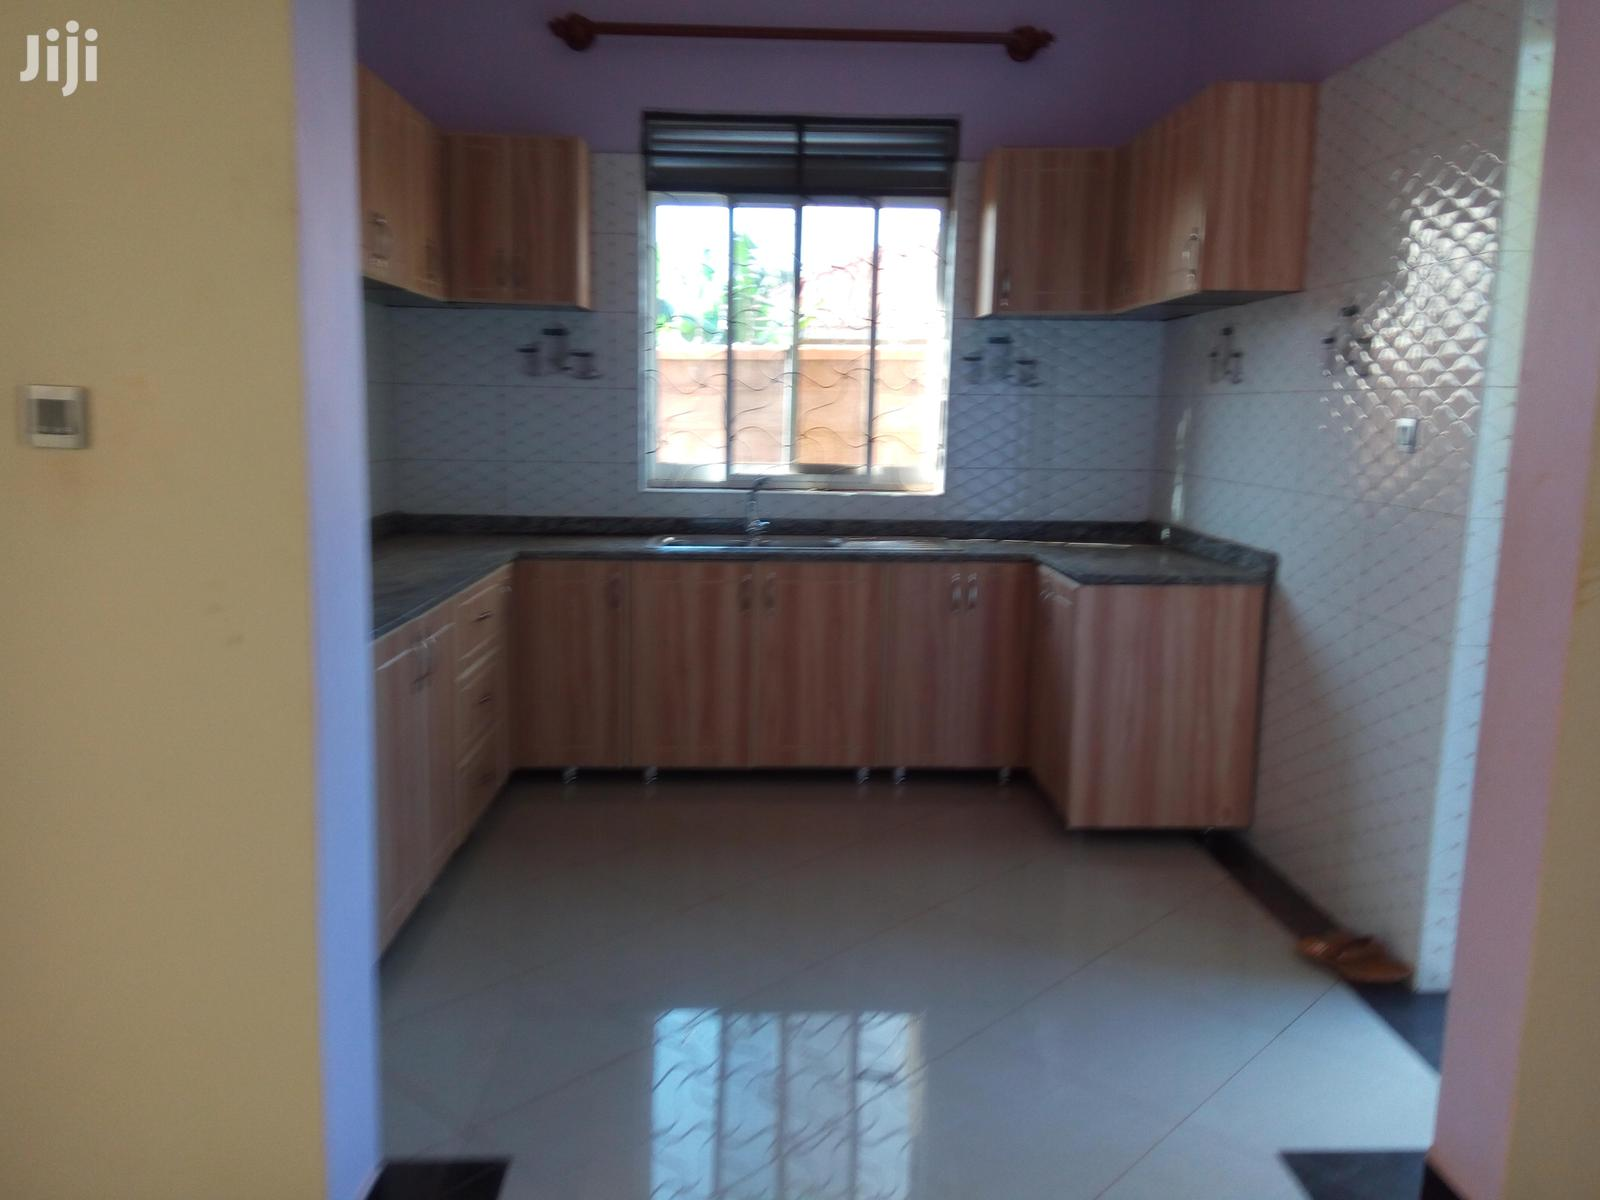 Apartments in Kira Town on Sell | Houses & Apartments For Sale for sale in Kampala, Central Region, Uganda